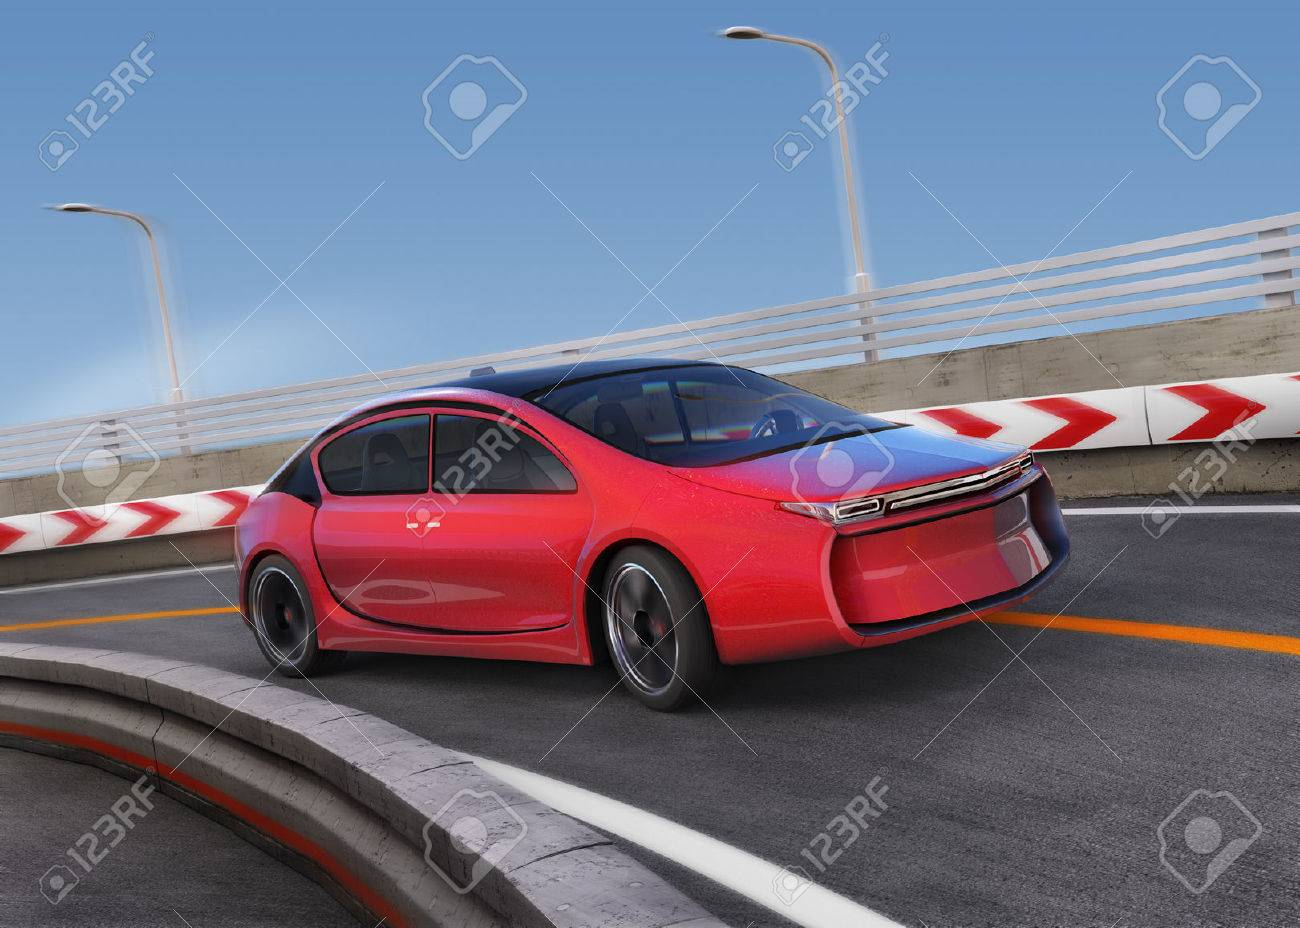 Red electric car on highway with motion blur background. 3D rendering image. - 52877465